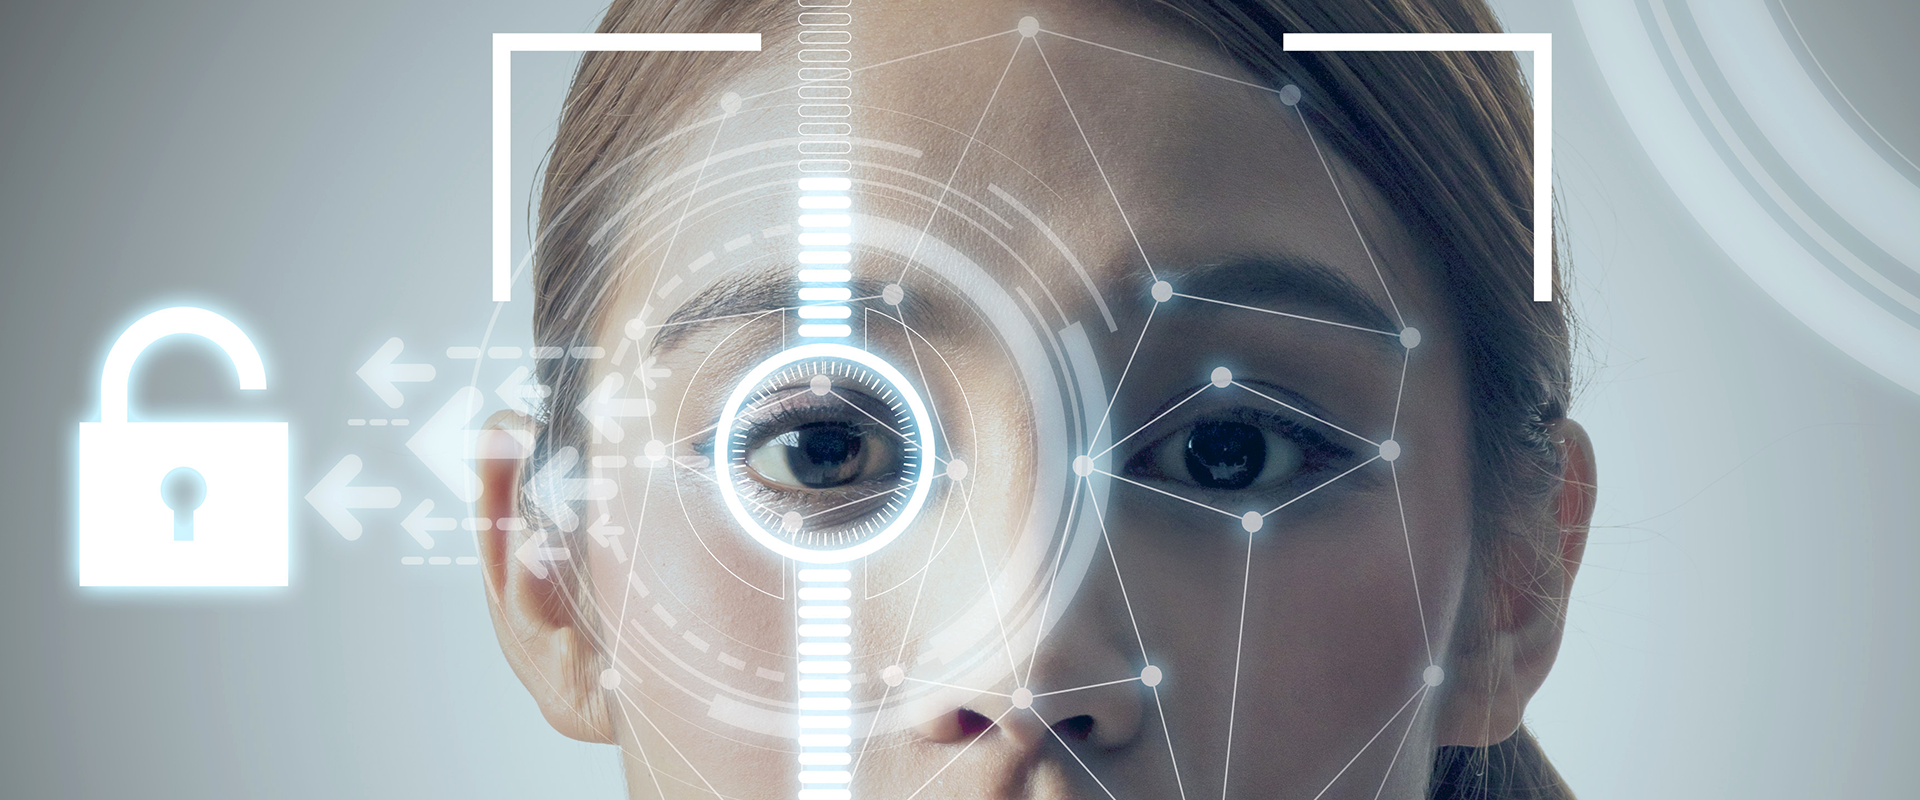 facial-recognition-for-brick-and-mortar